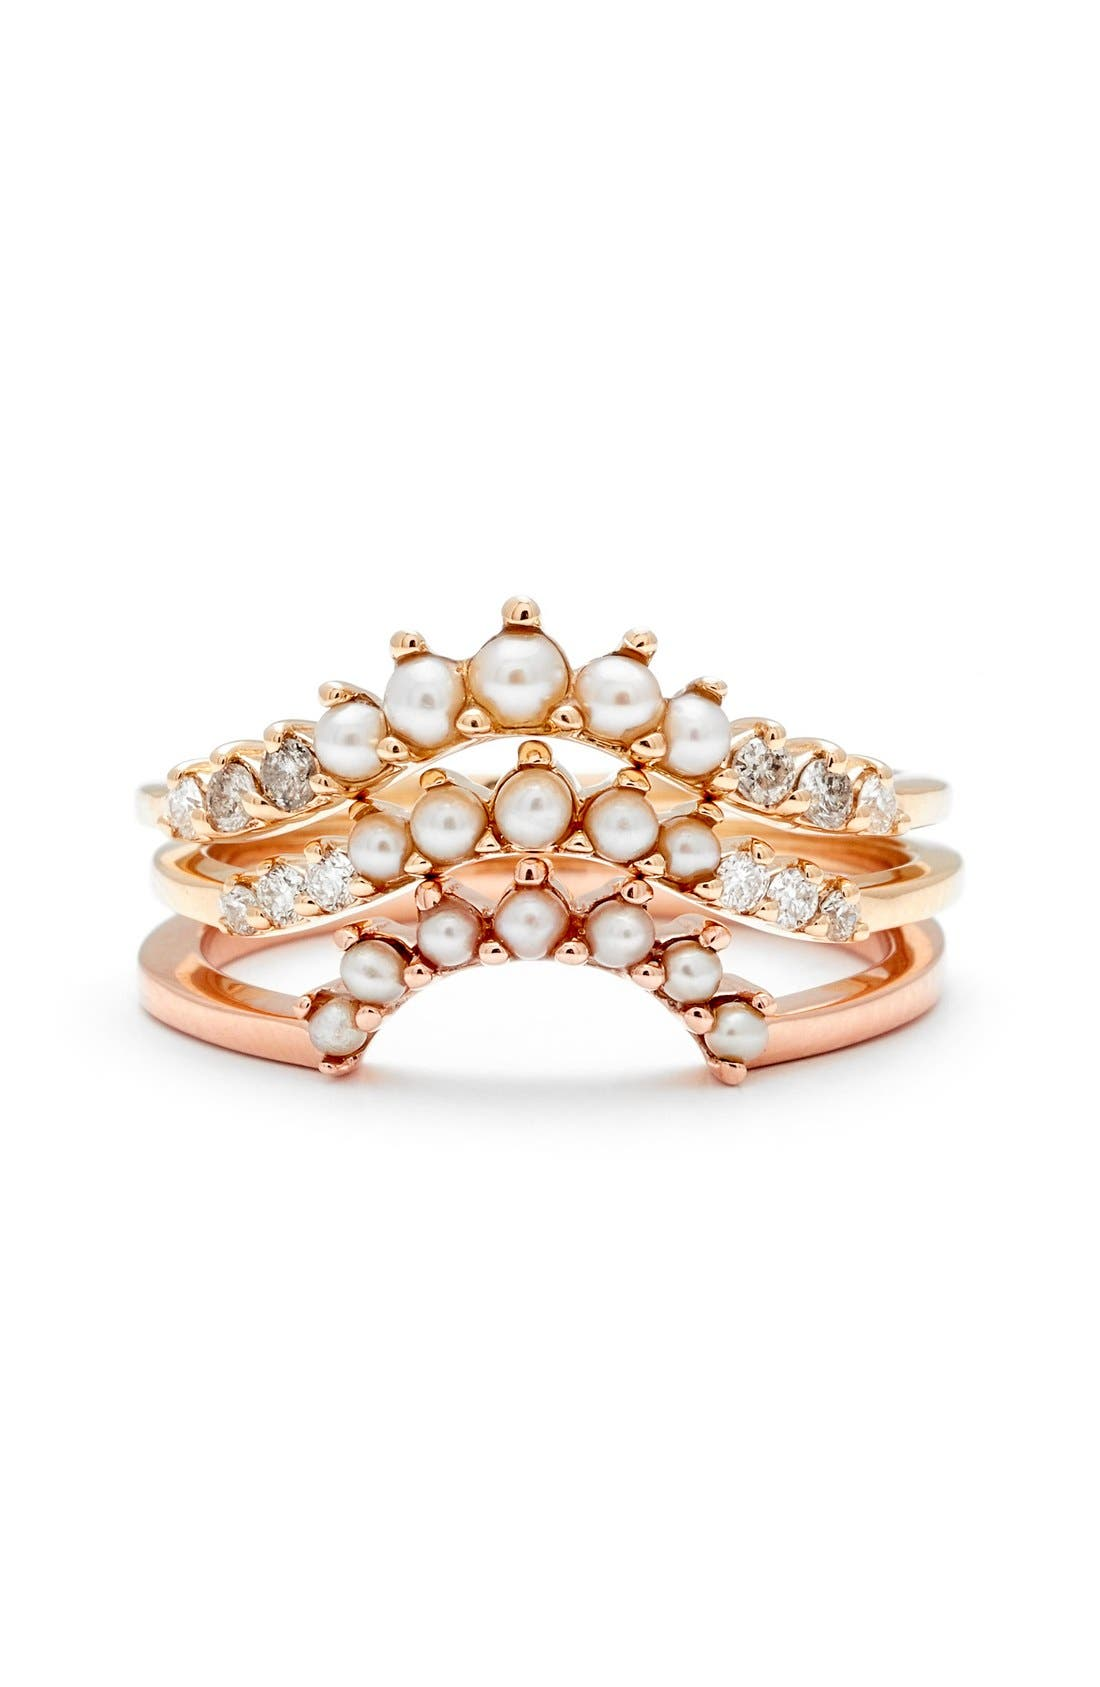 'Grand Tiara' Seed Pearl Ring,                             Alternate thumbnail 2, color,                             ROSE/ GOLD/ CHAMPAGNE